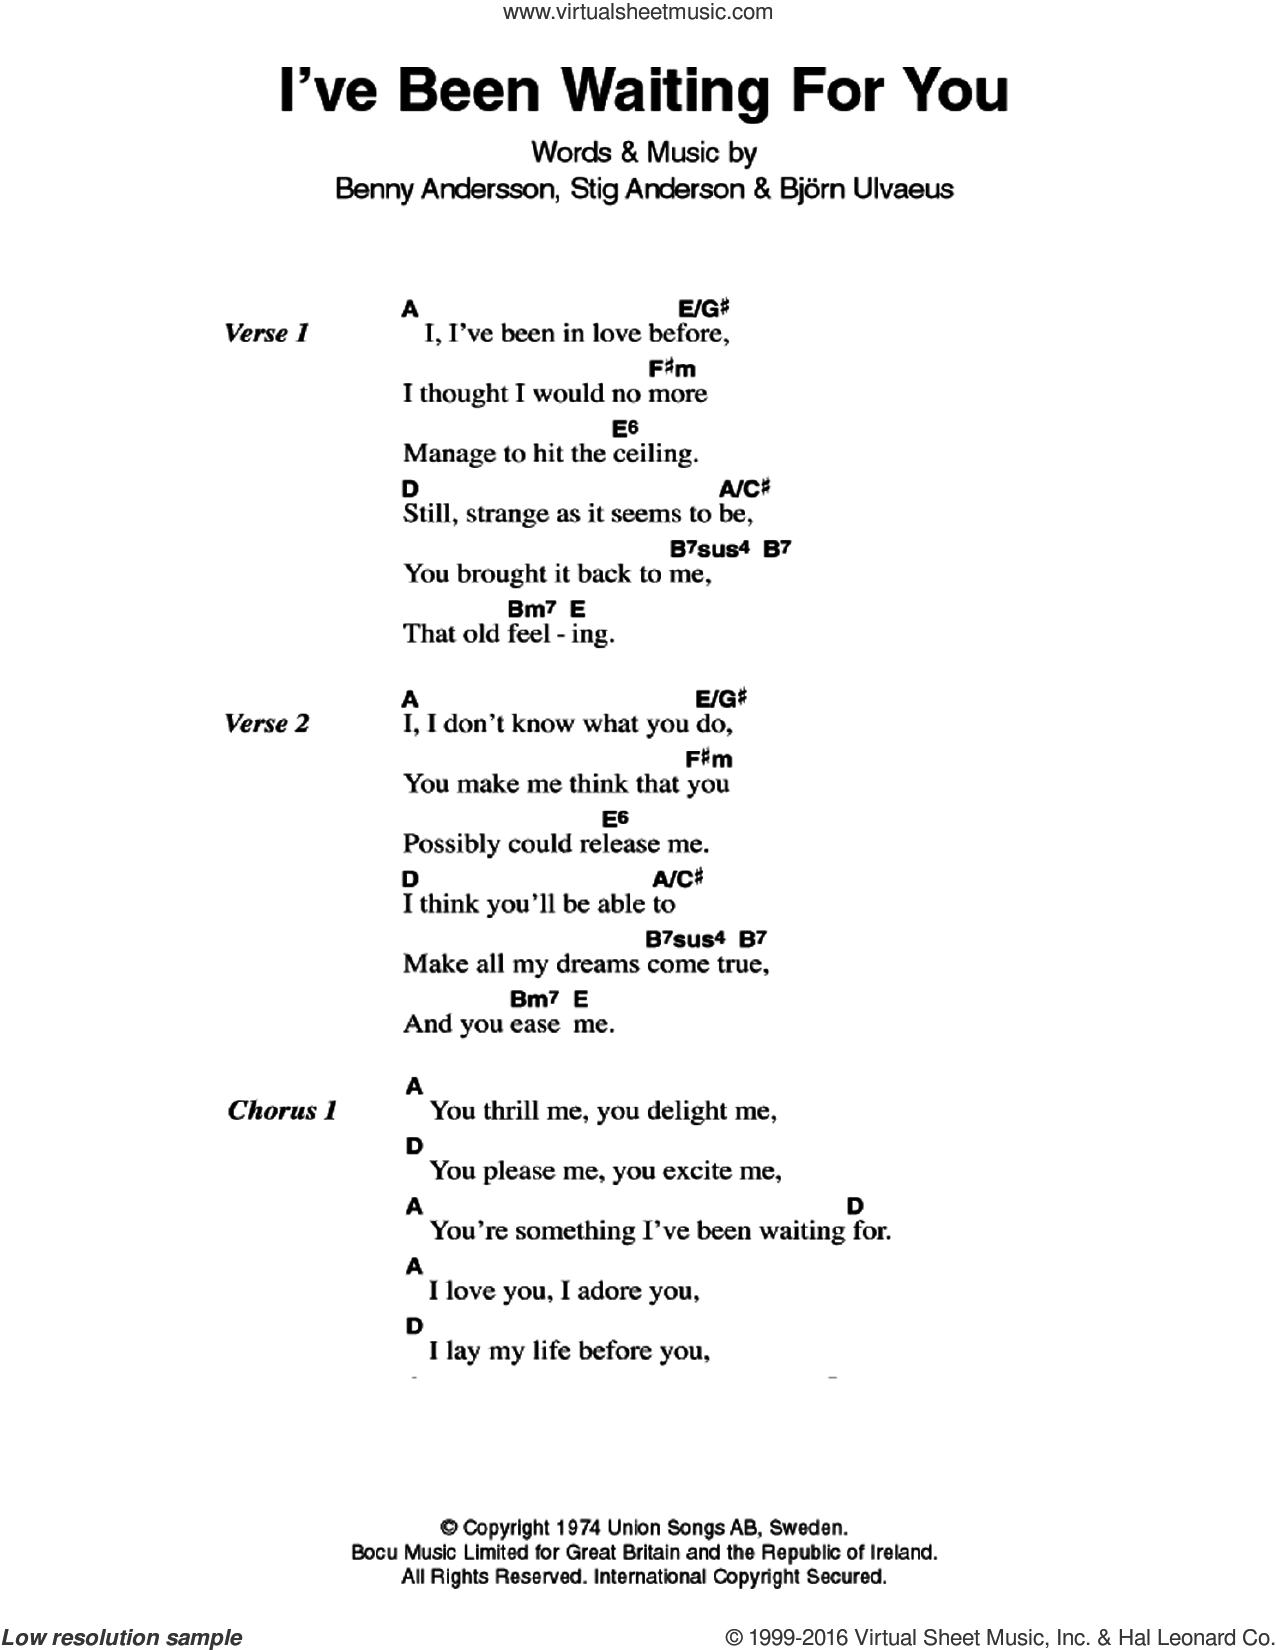 Abba Ive Been Waiting For You Sheet Music For Guitar Chords